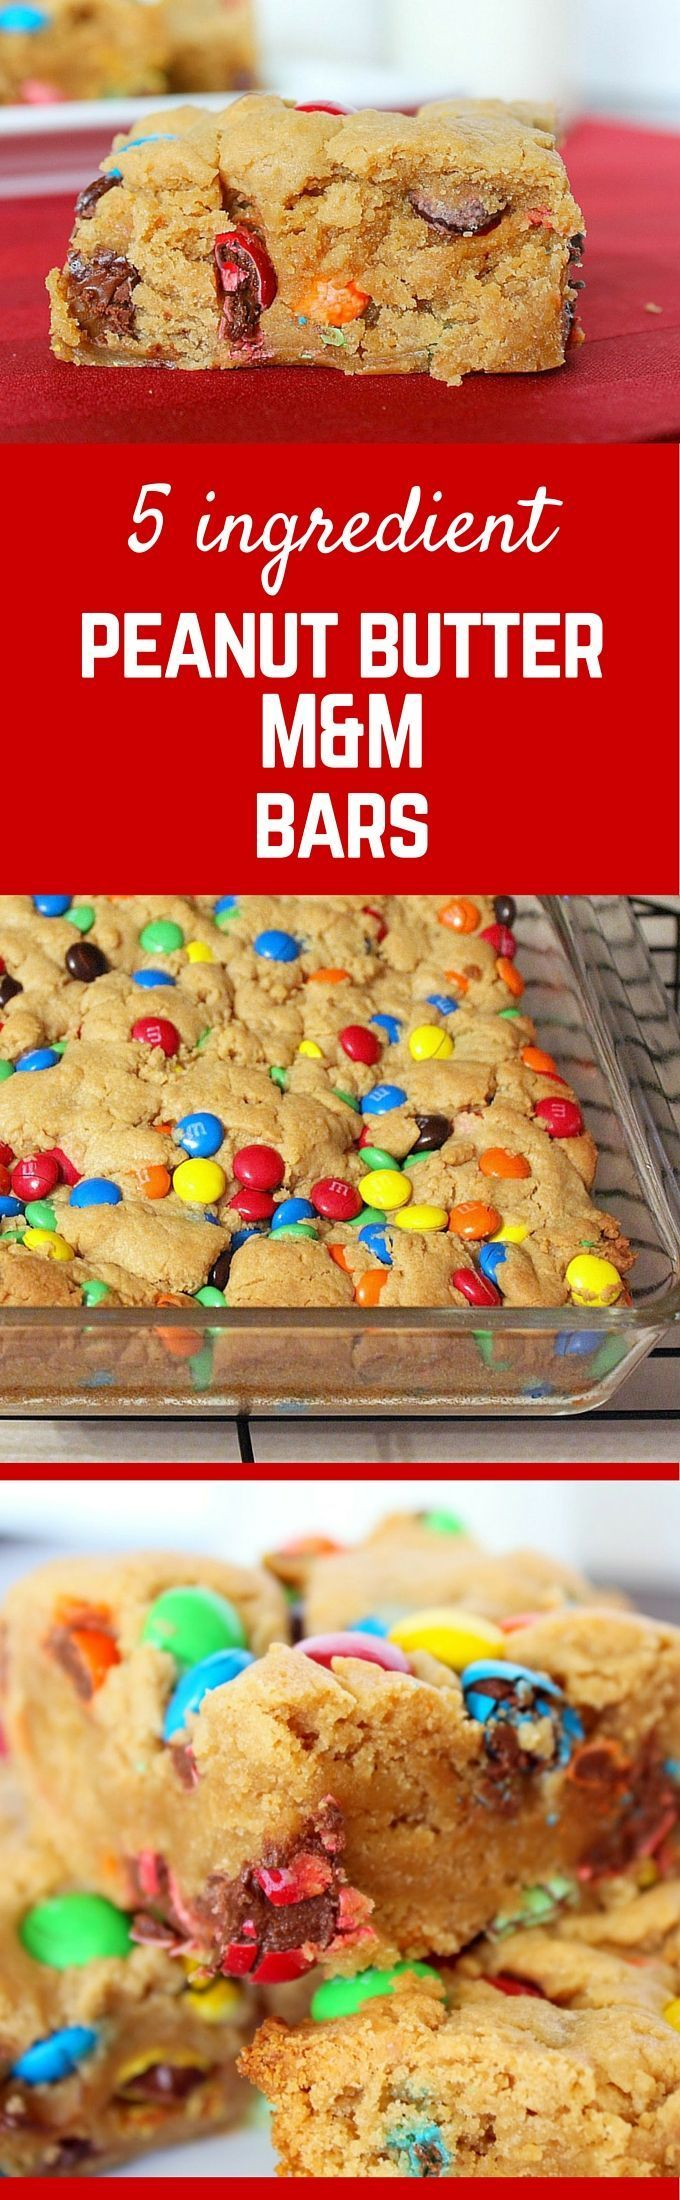 Irresistible M&M Peanut Butter Bars with only 5 ingredients! Get the easy dessert recipe